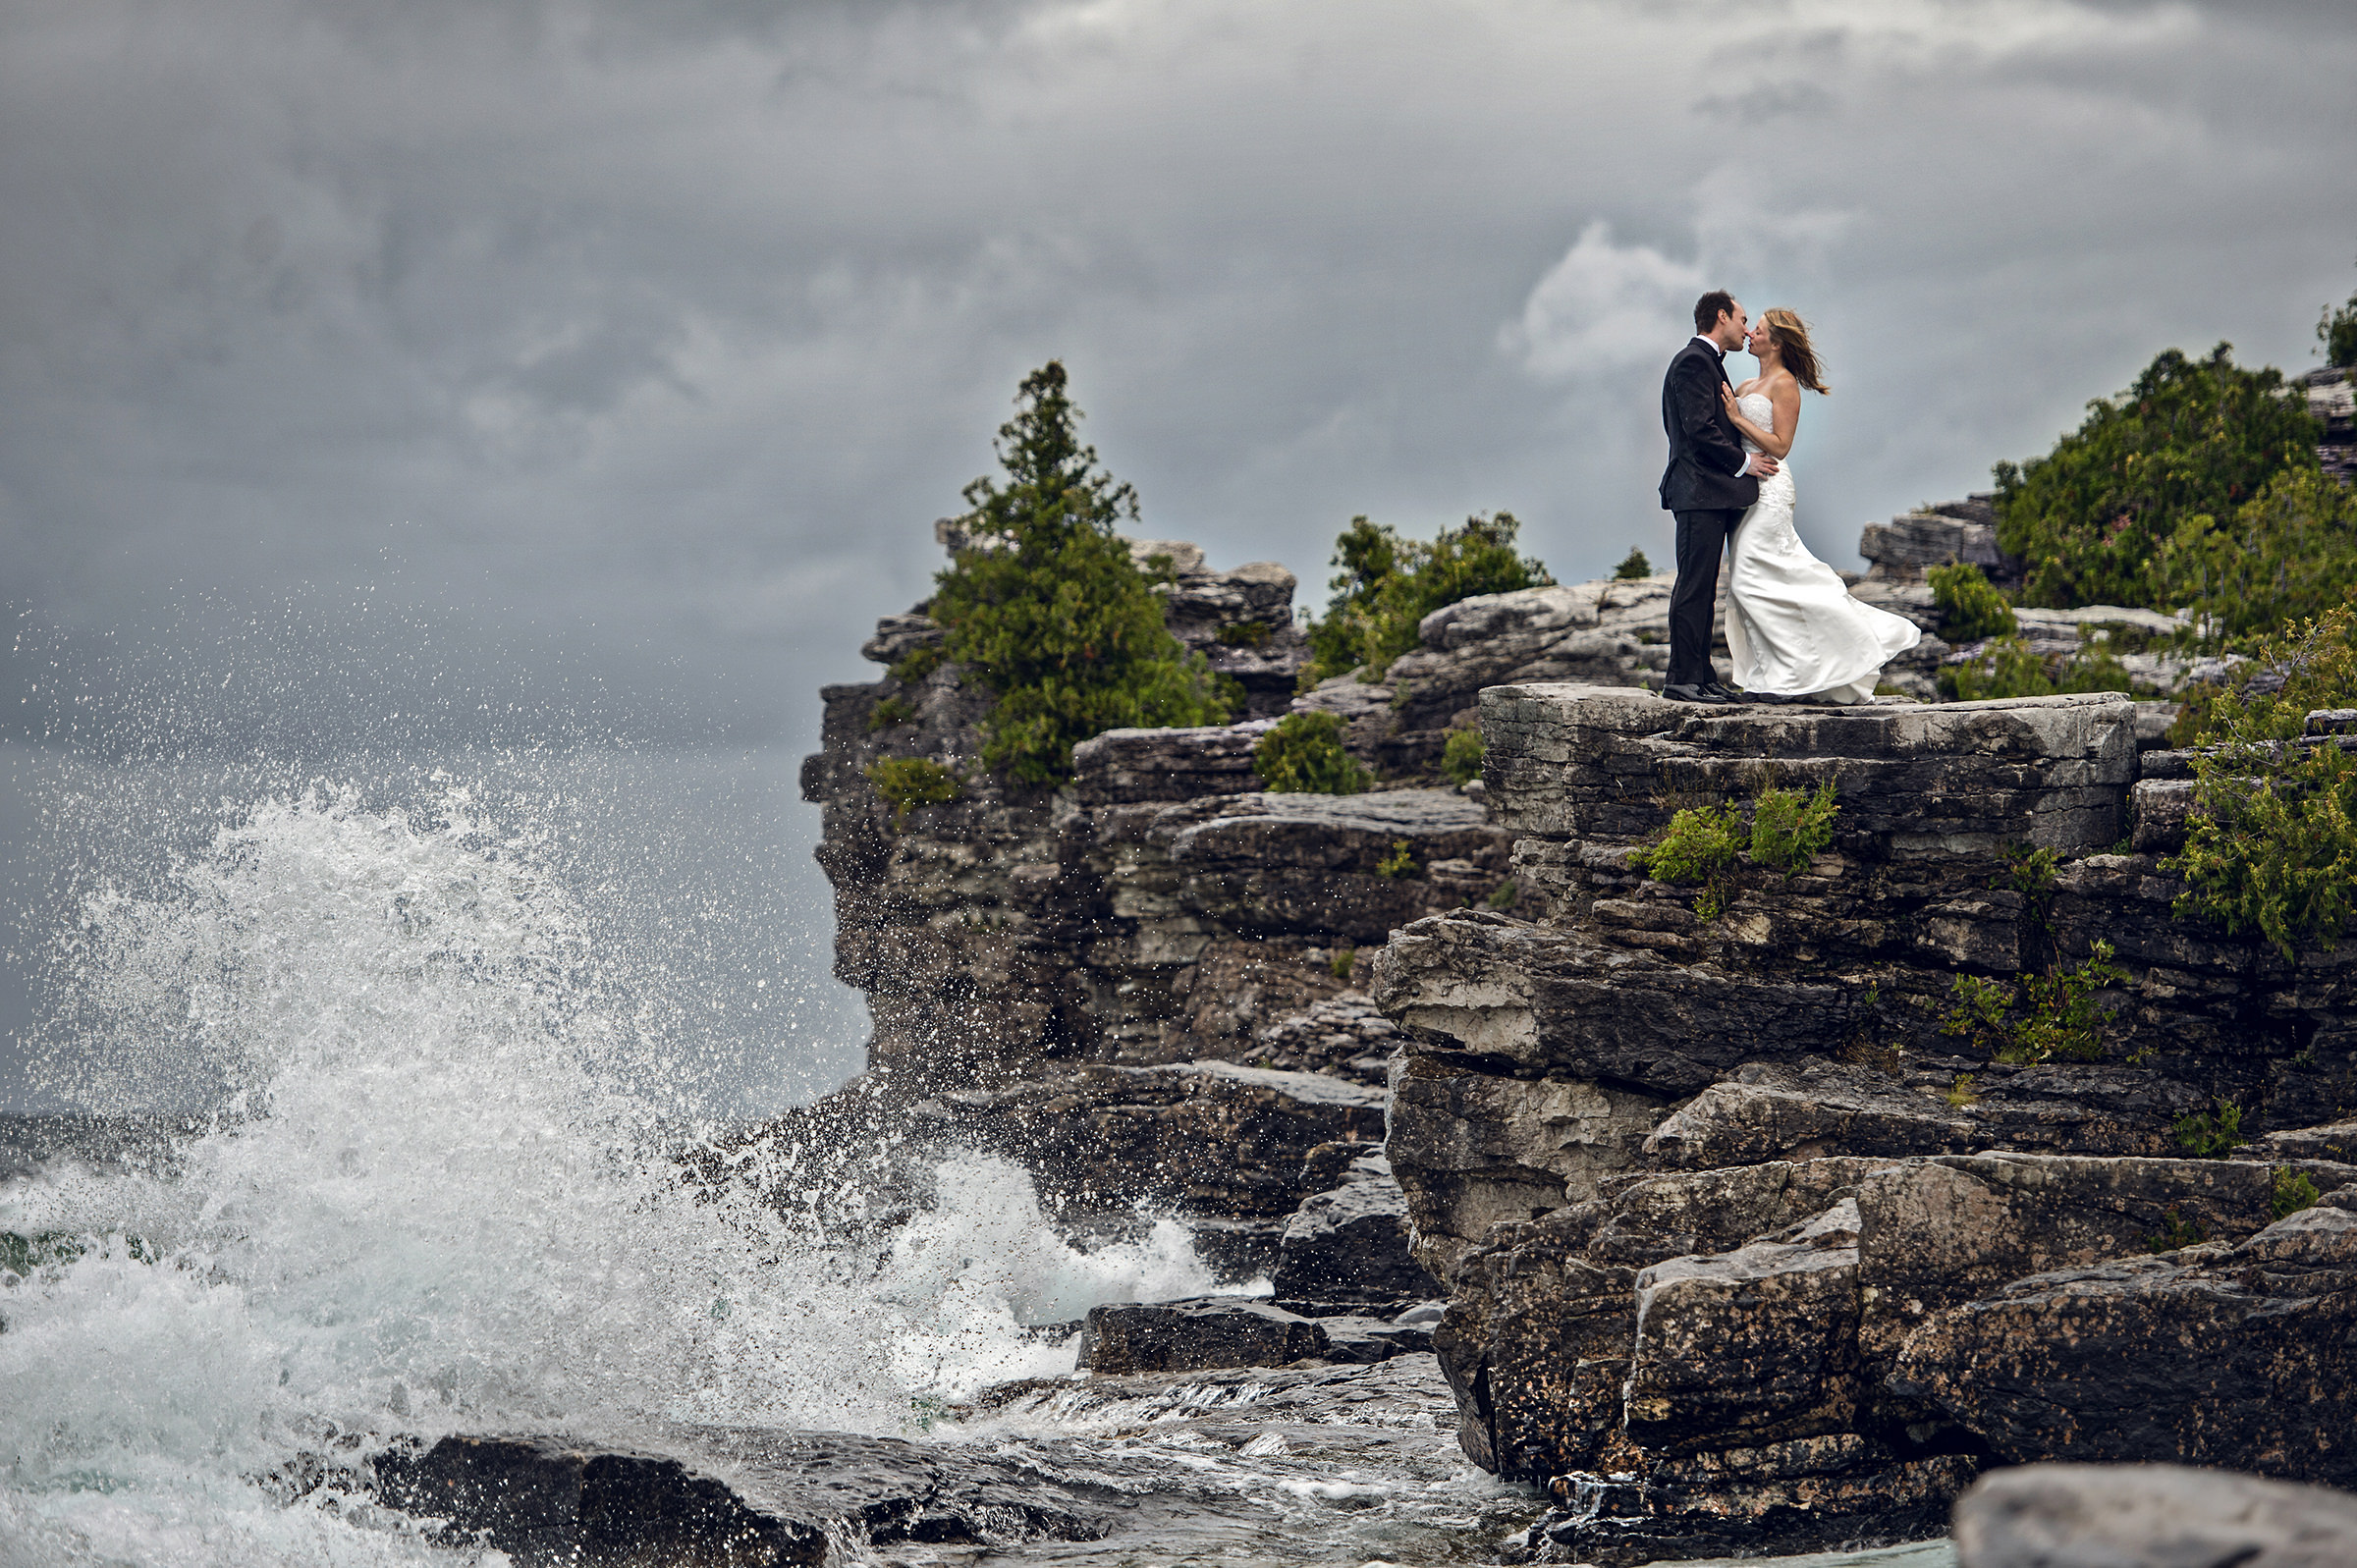 Cyprus Lake Bruce Peninsula National Park - couple kissing on cliffs by surf - photo by David & Sherry Photography